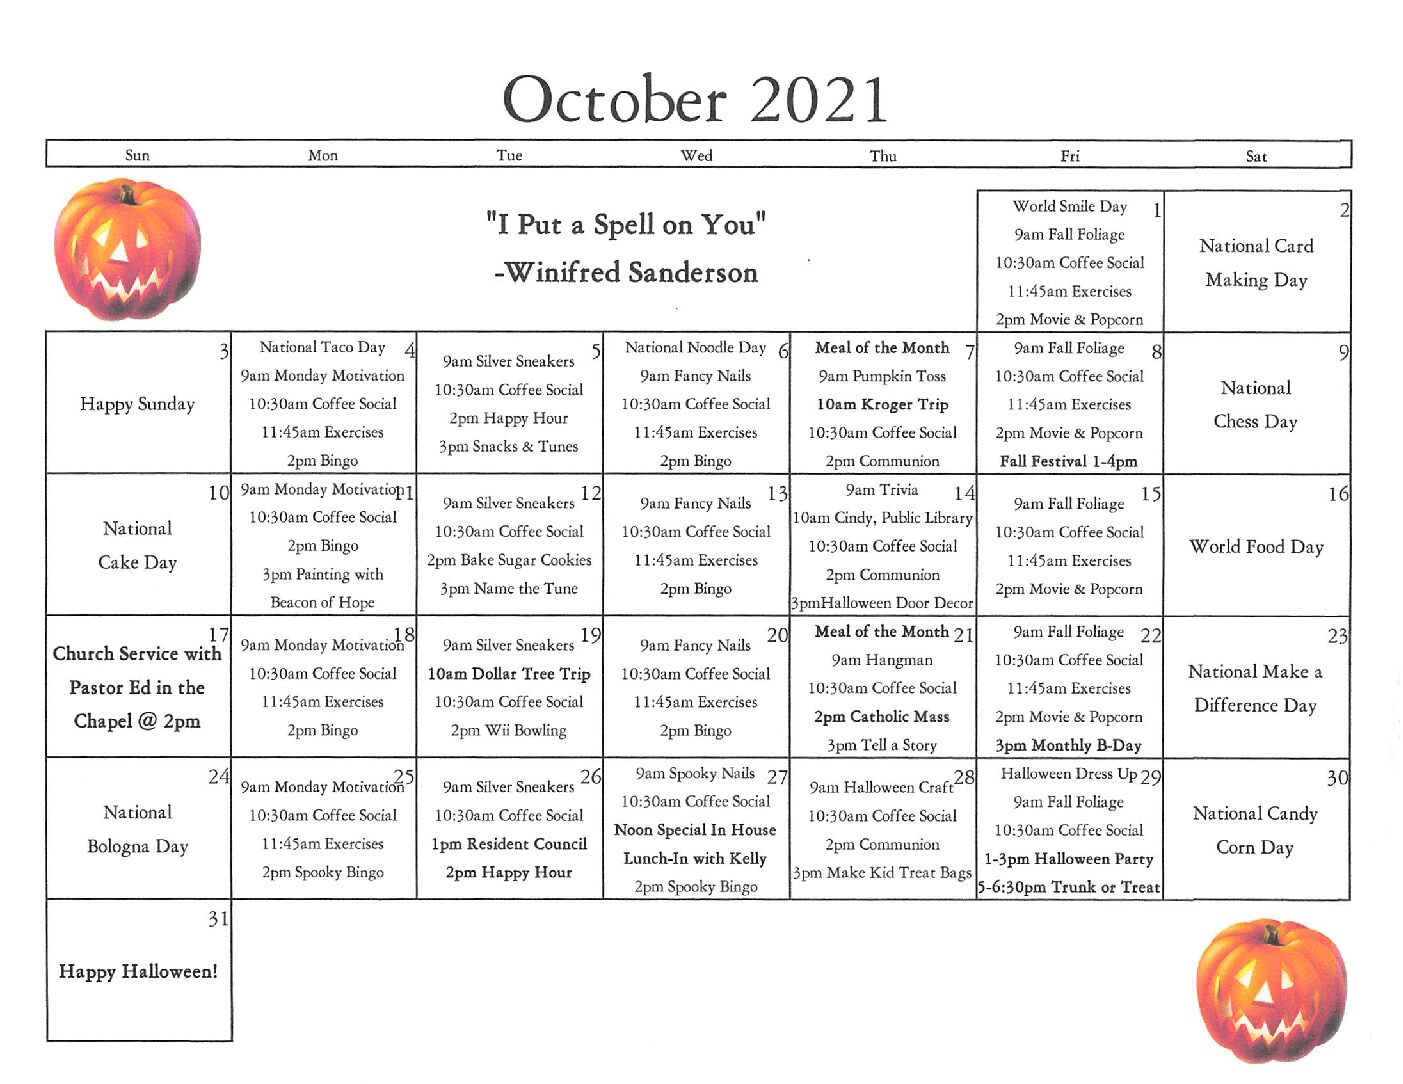 Activities Calendar for Saint Francis Woods Supportive Living in Peoria